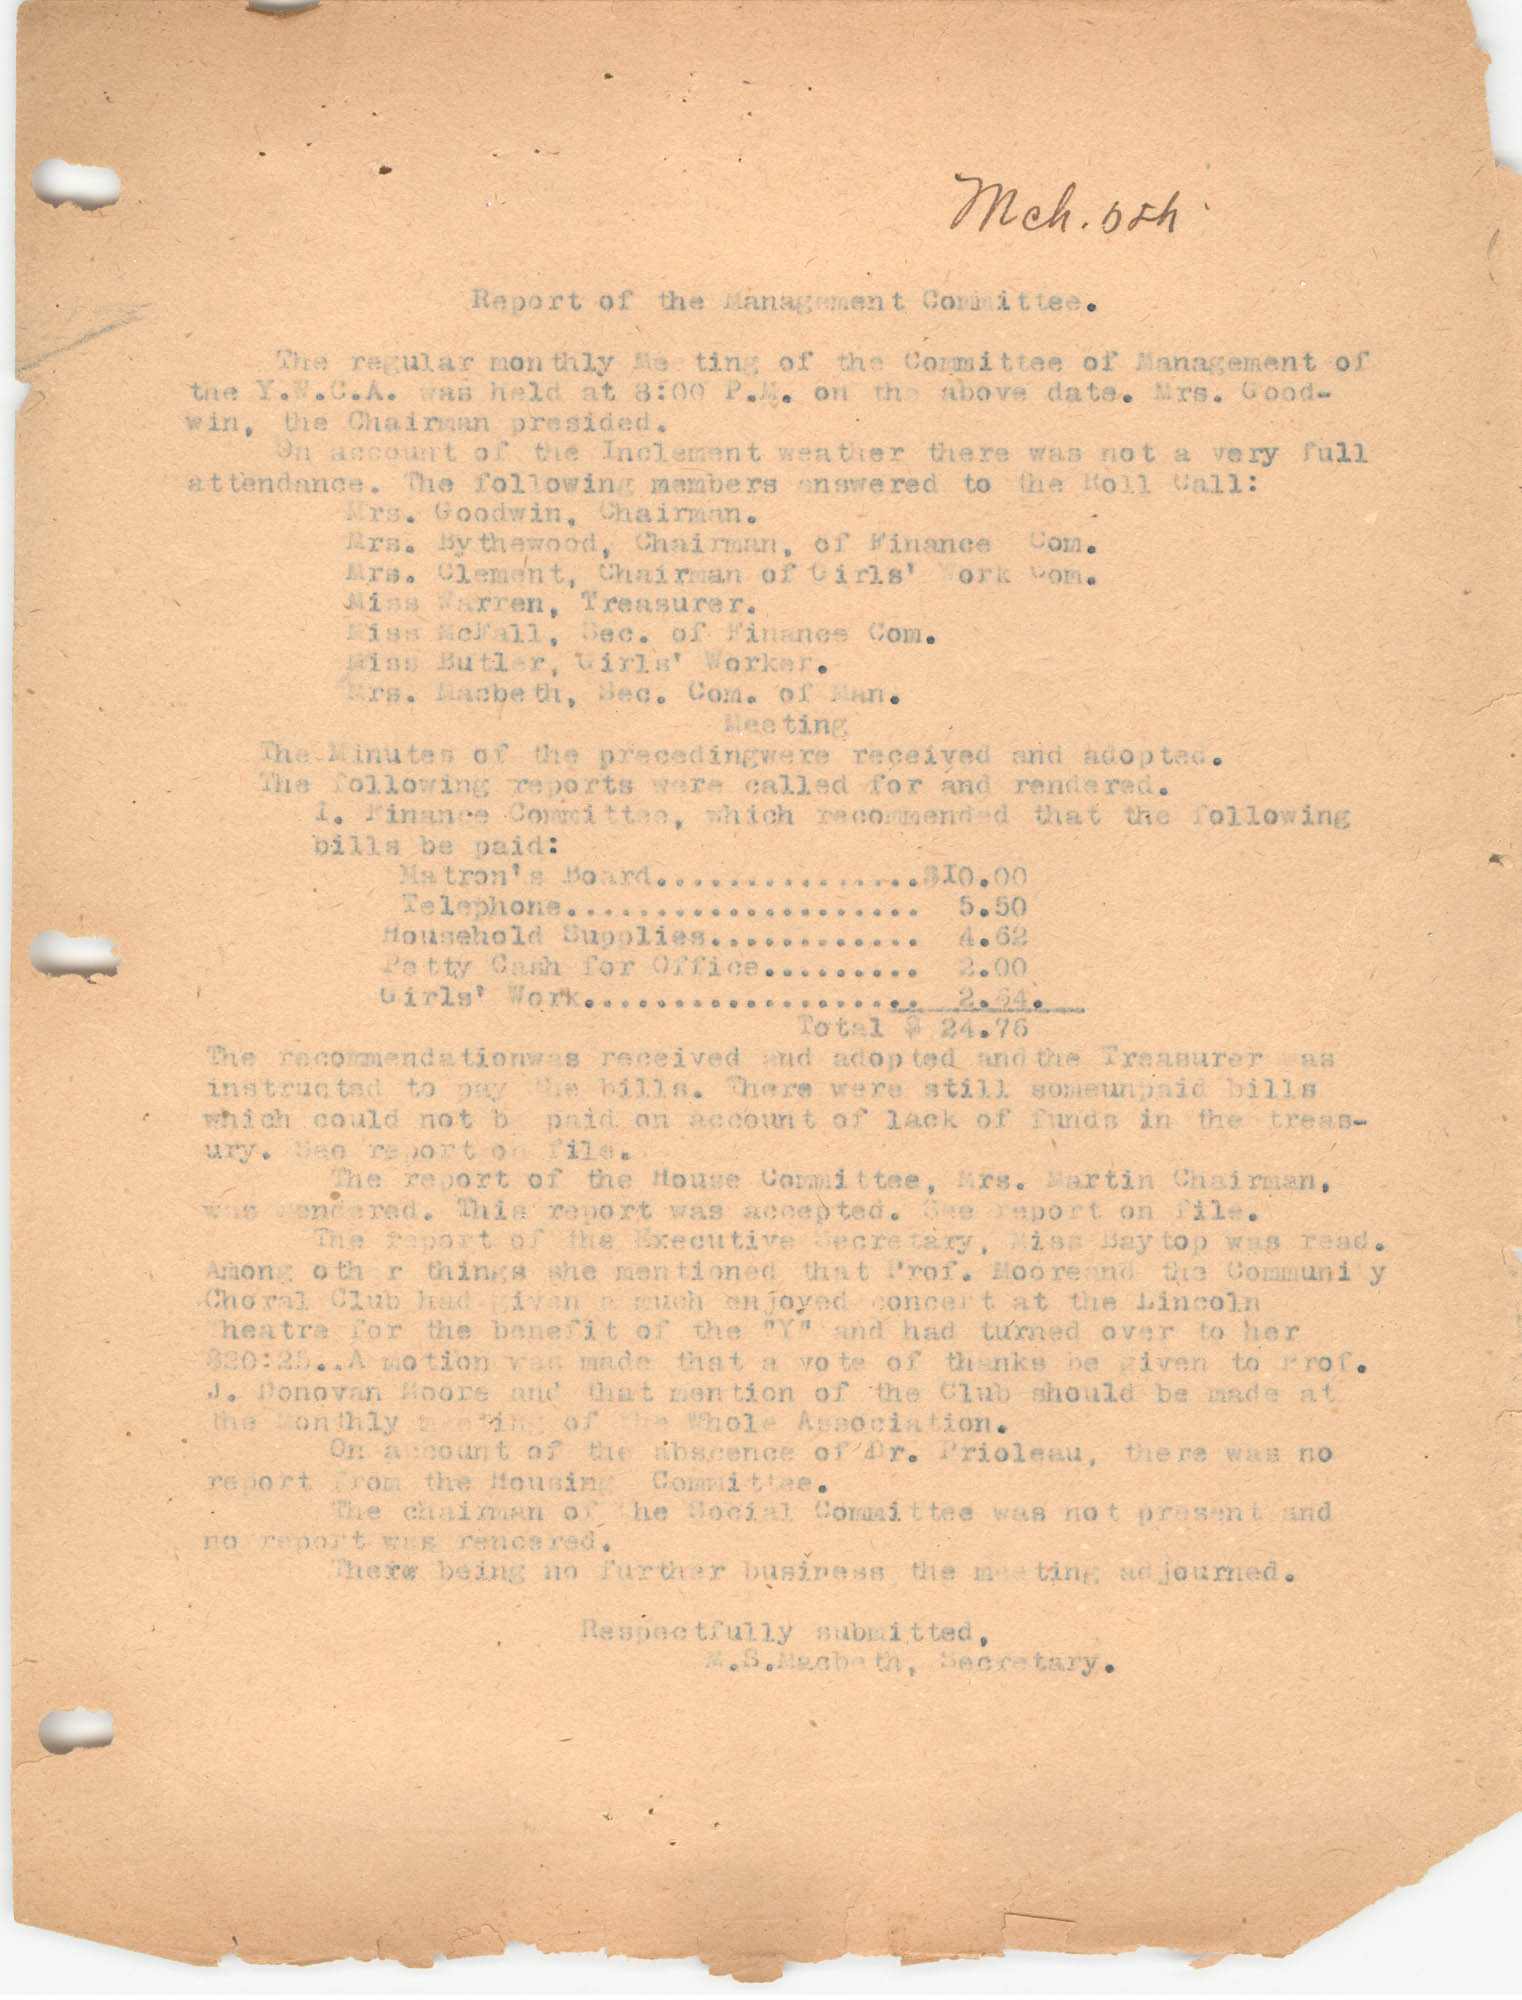 Report of the Management Committee, Coming Street Y.W.C.A.